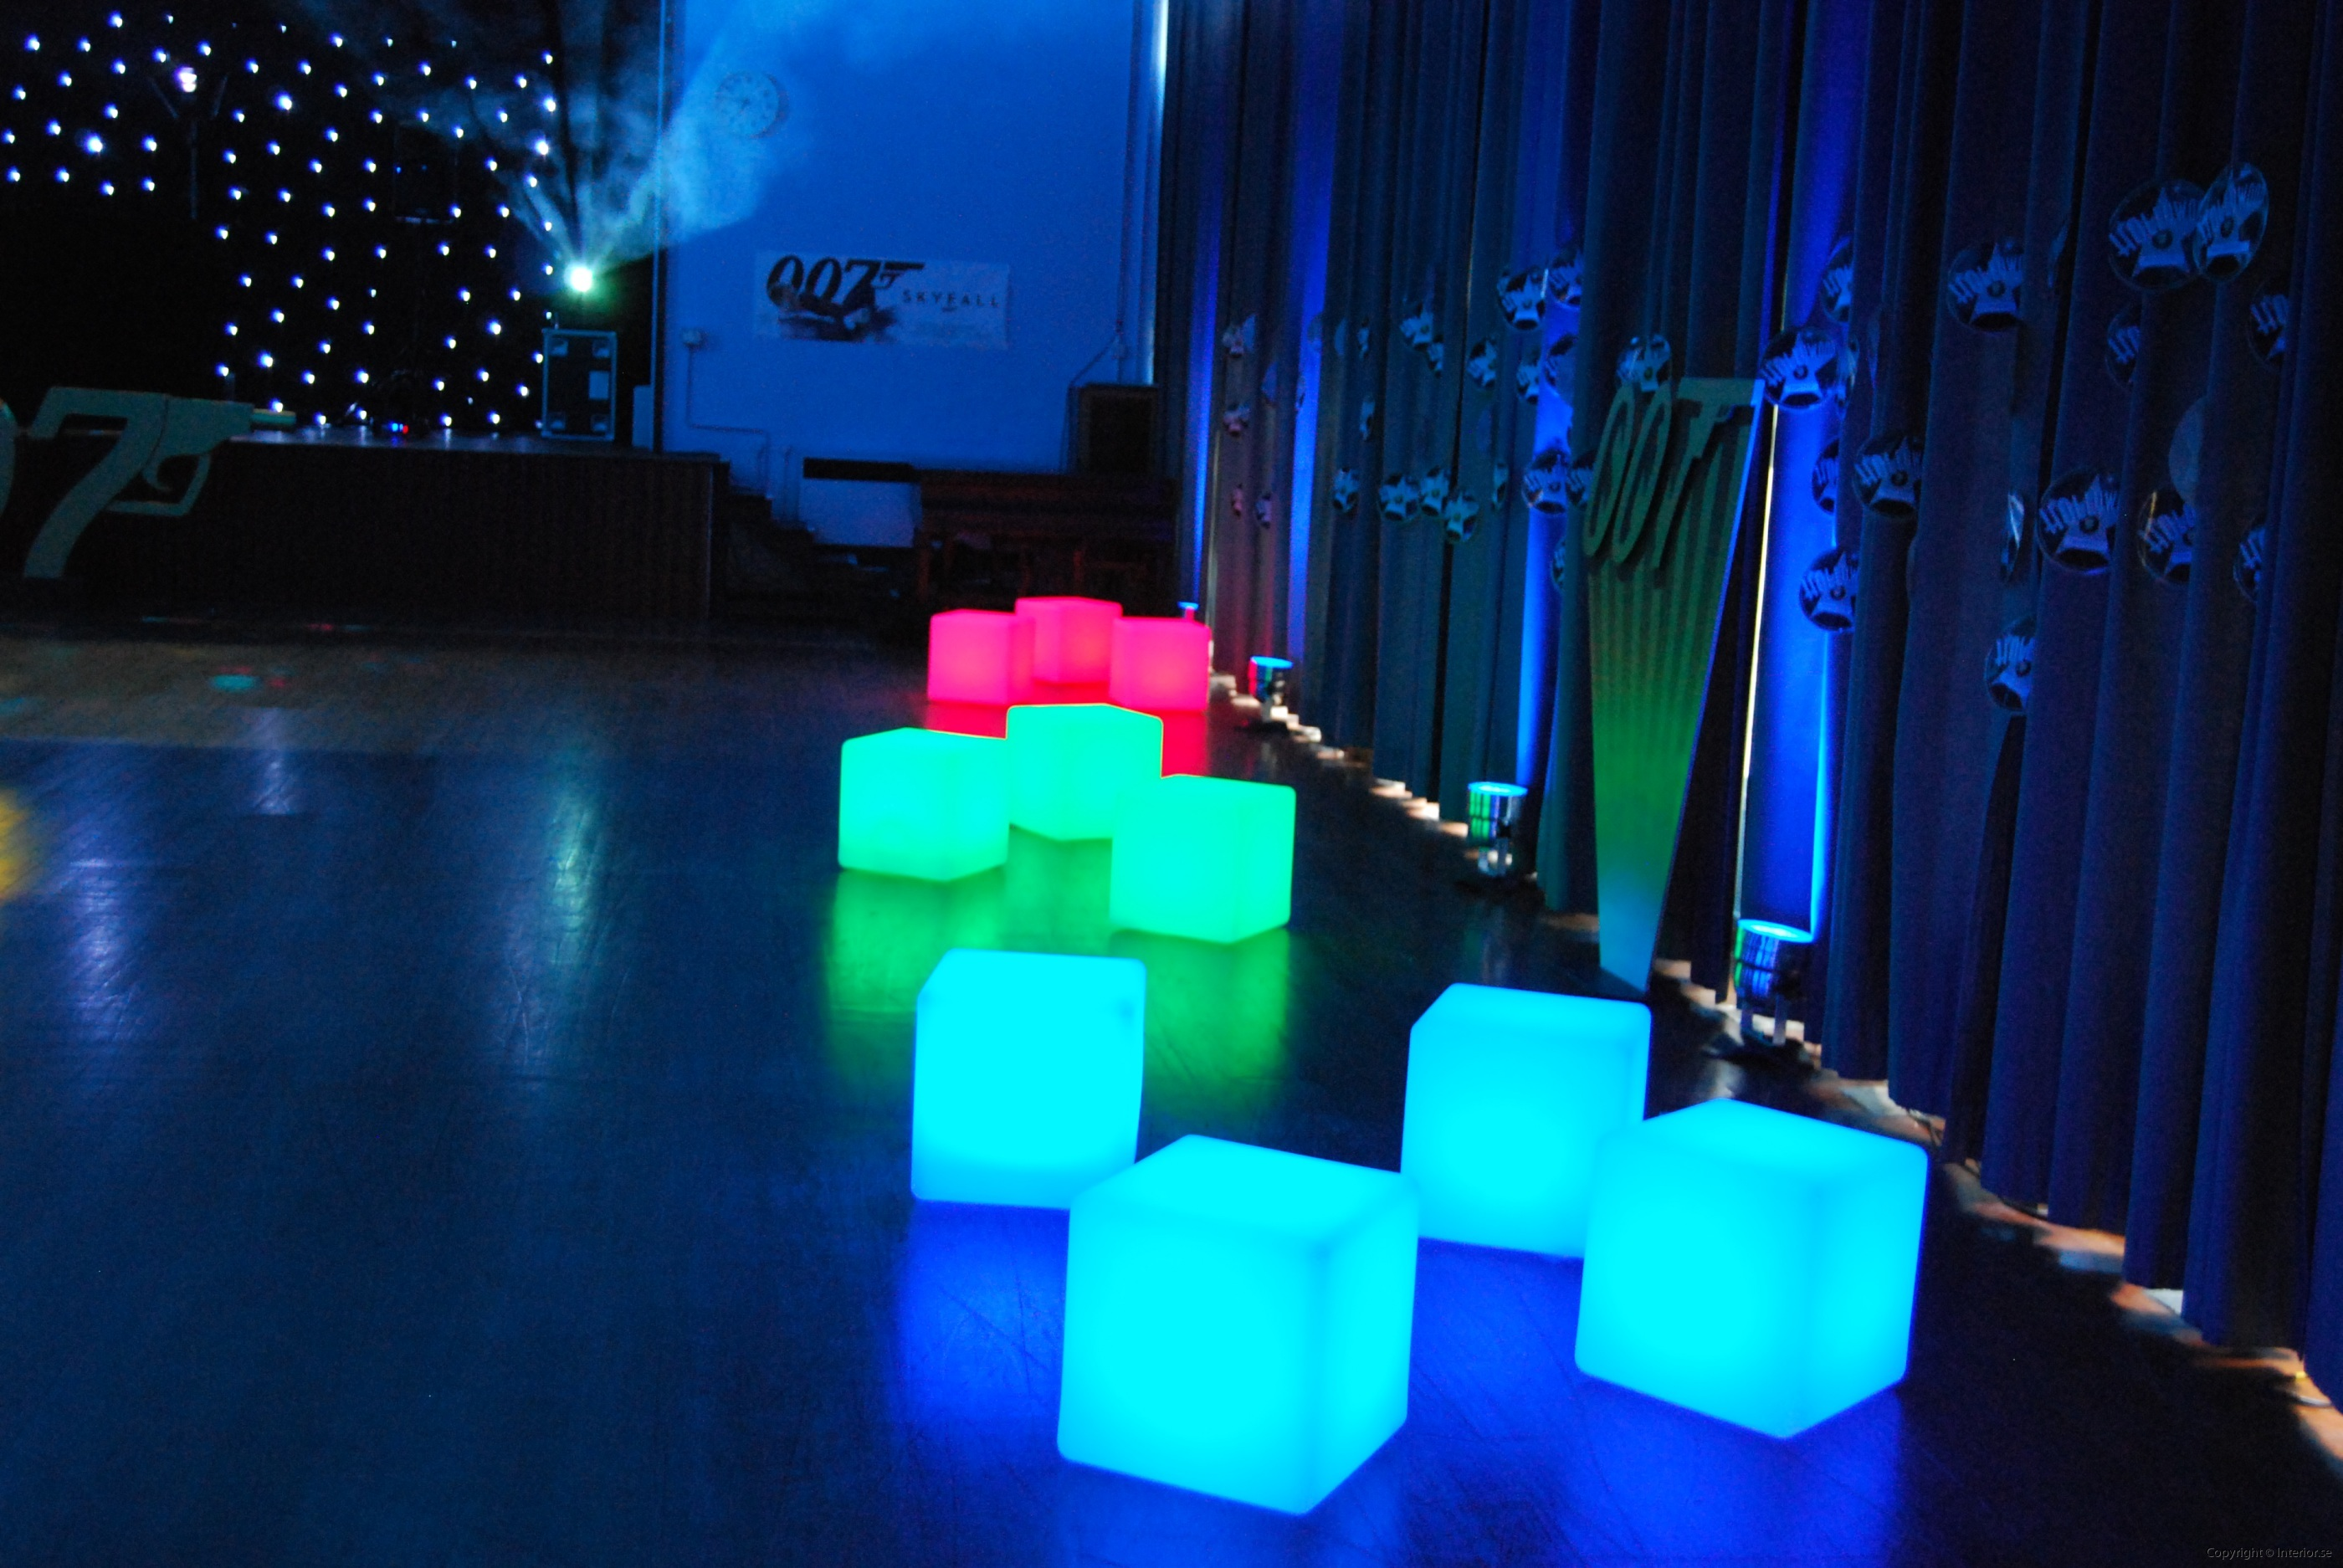 led kuber ledkuber led cubes hyra led möbler rent led furniture hire led furniture stockholm event (3)